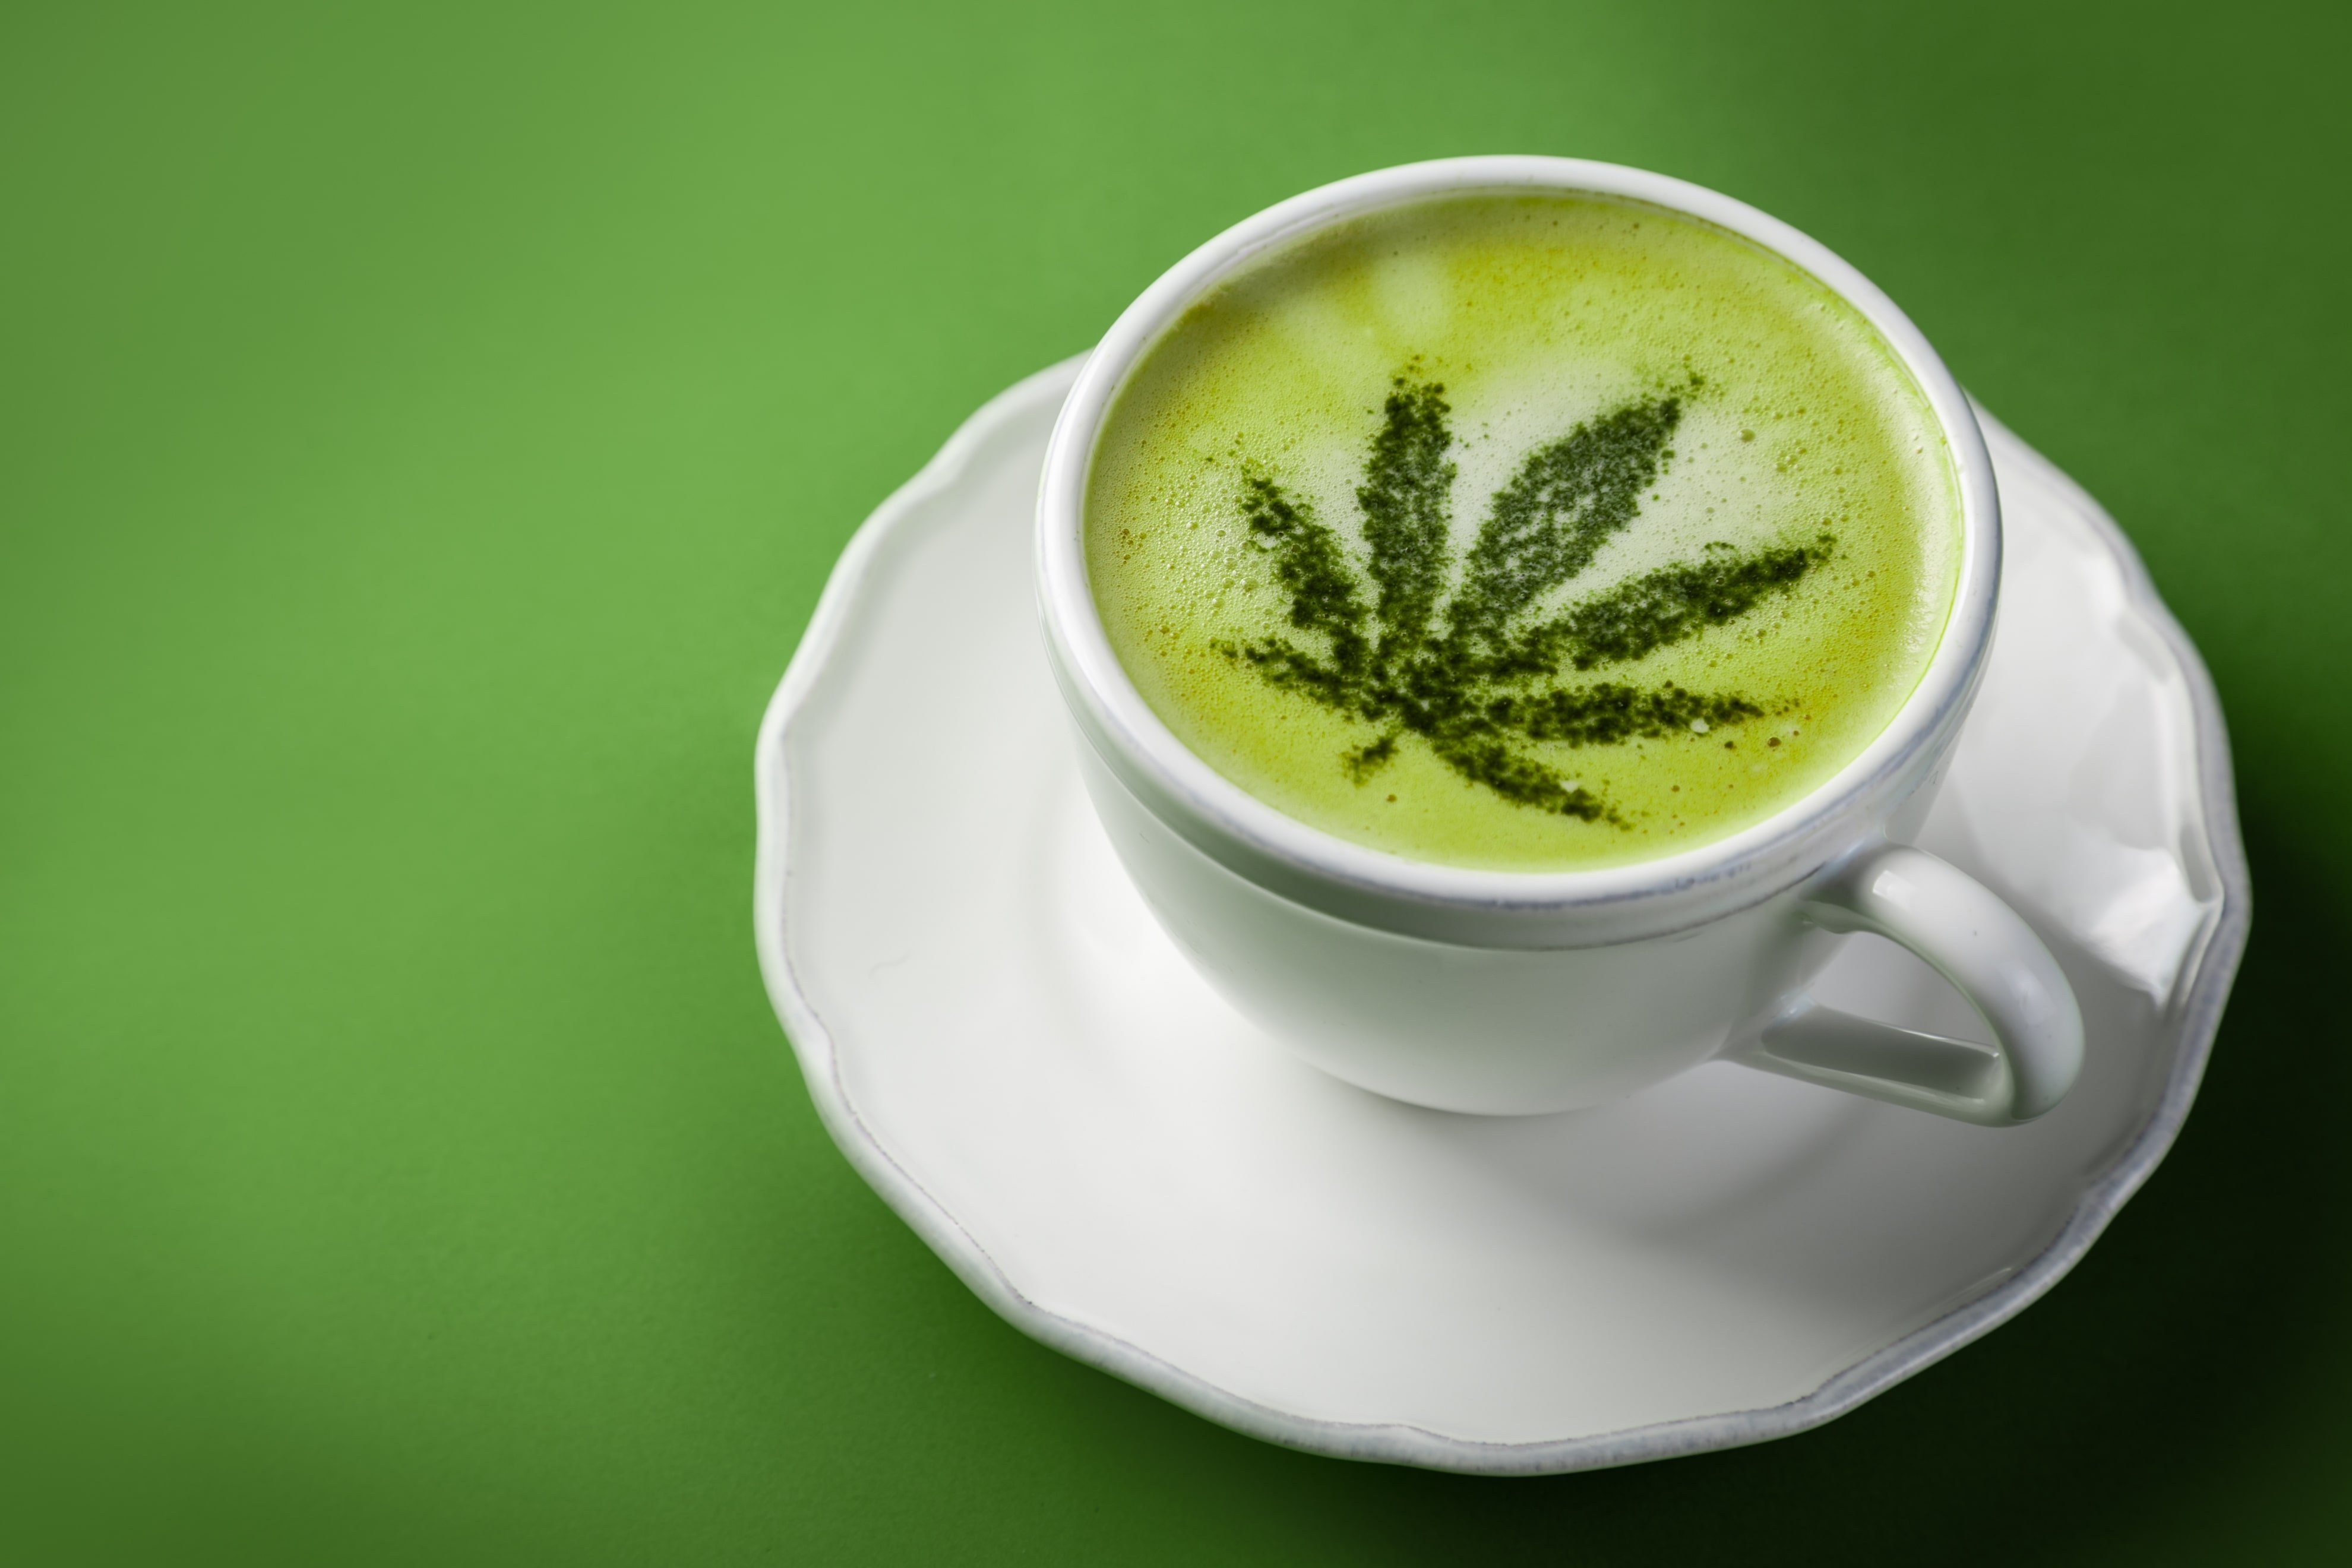 Six best strains for infused cannabis drinks